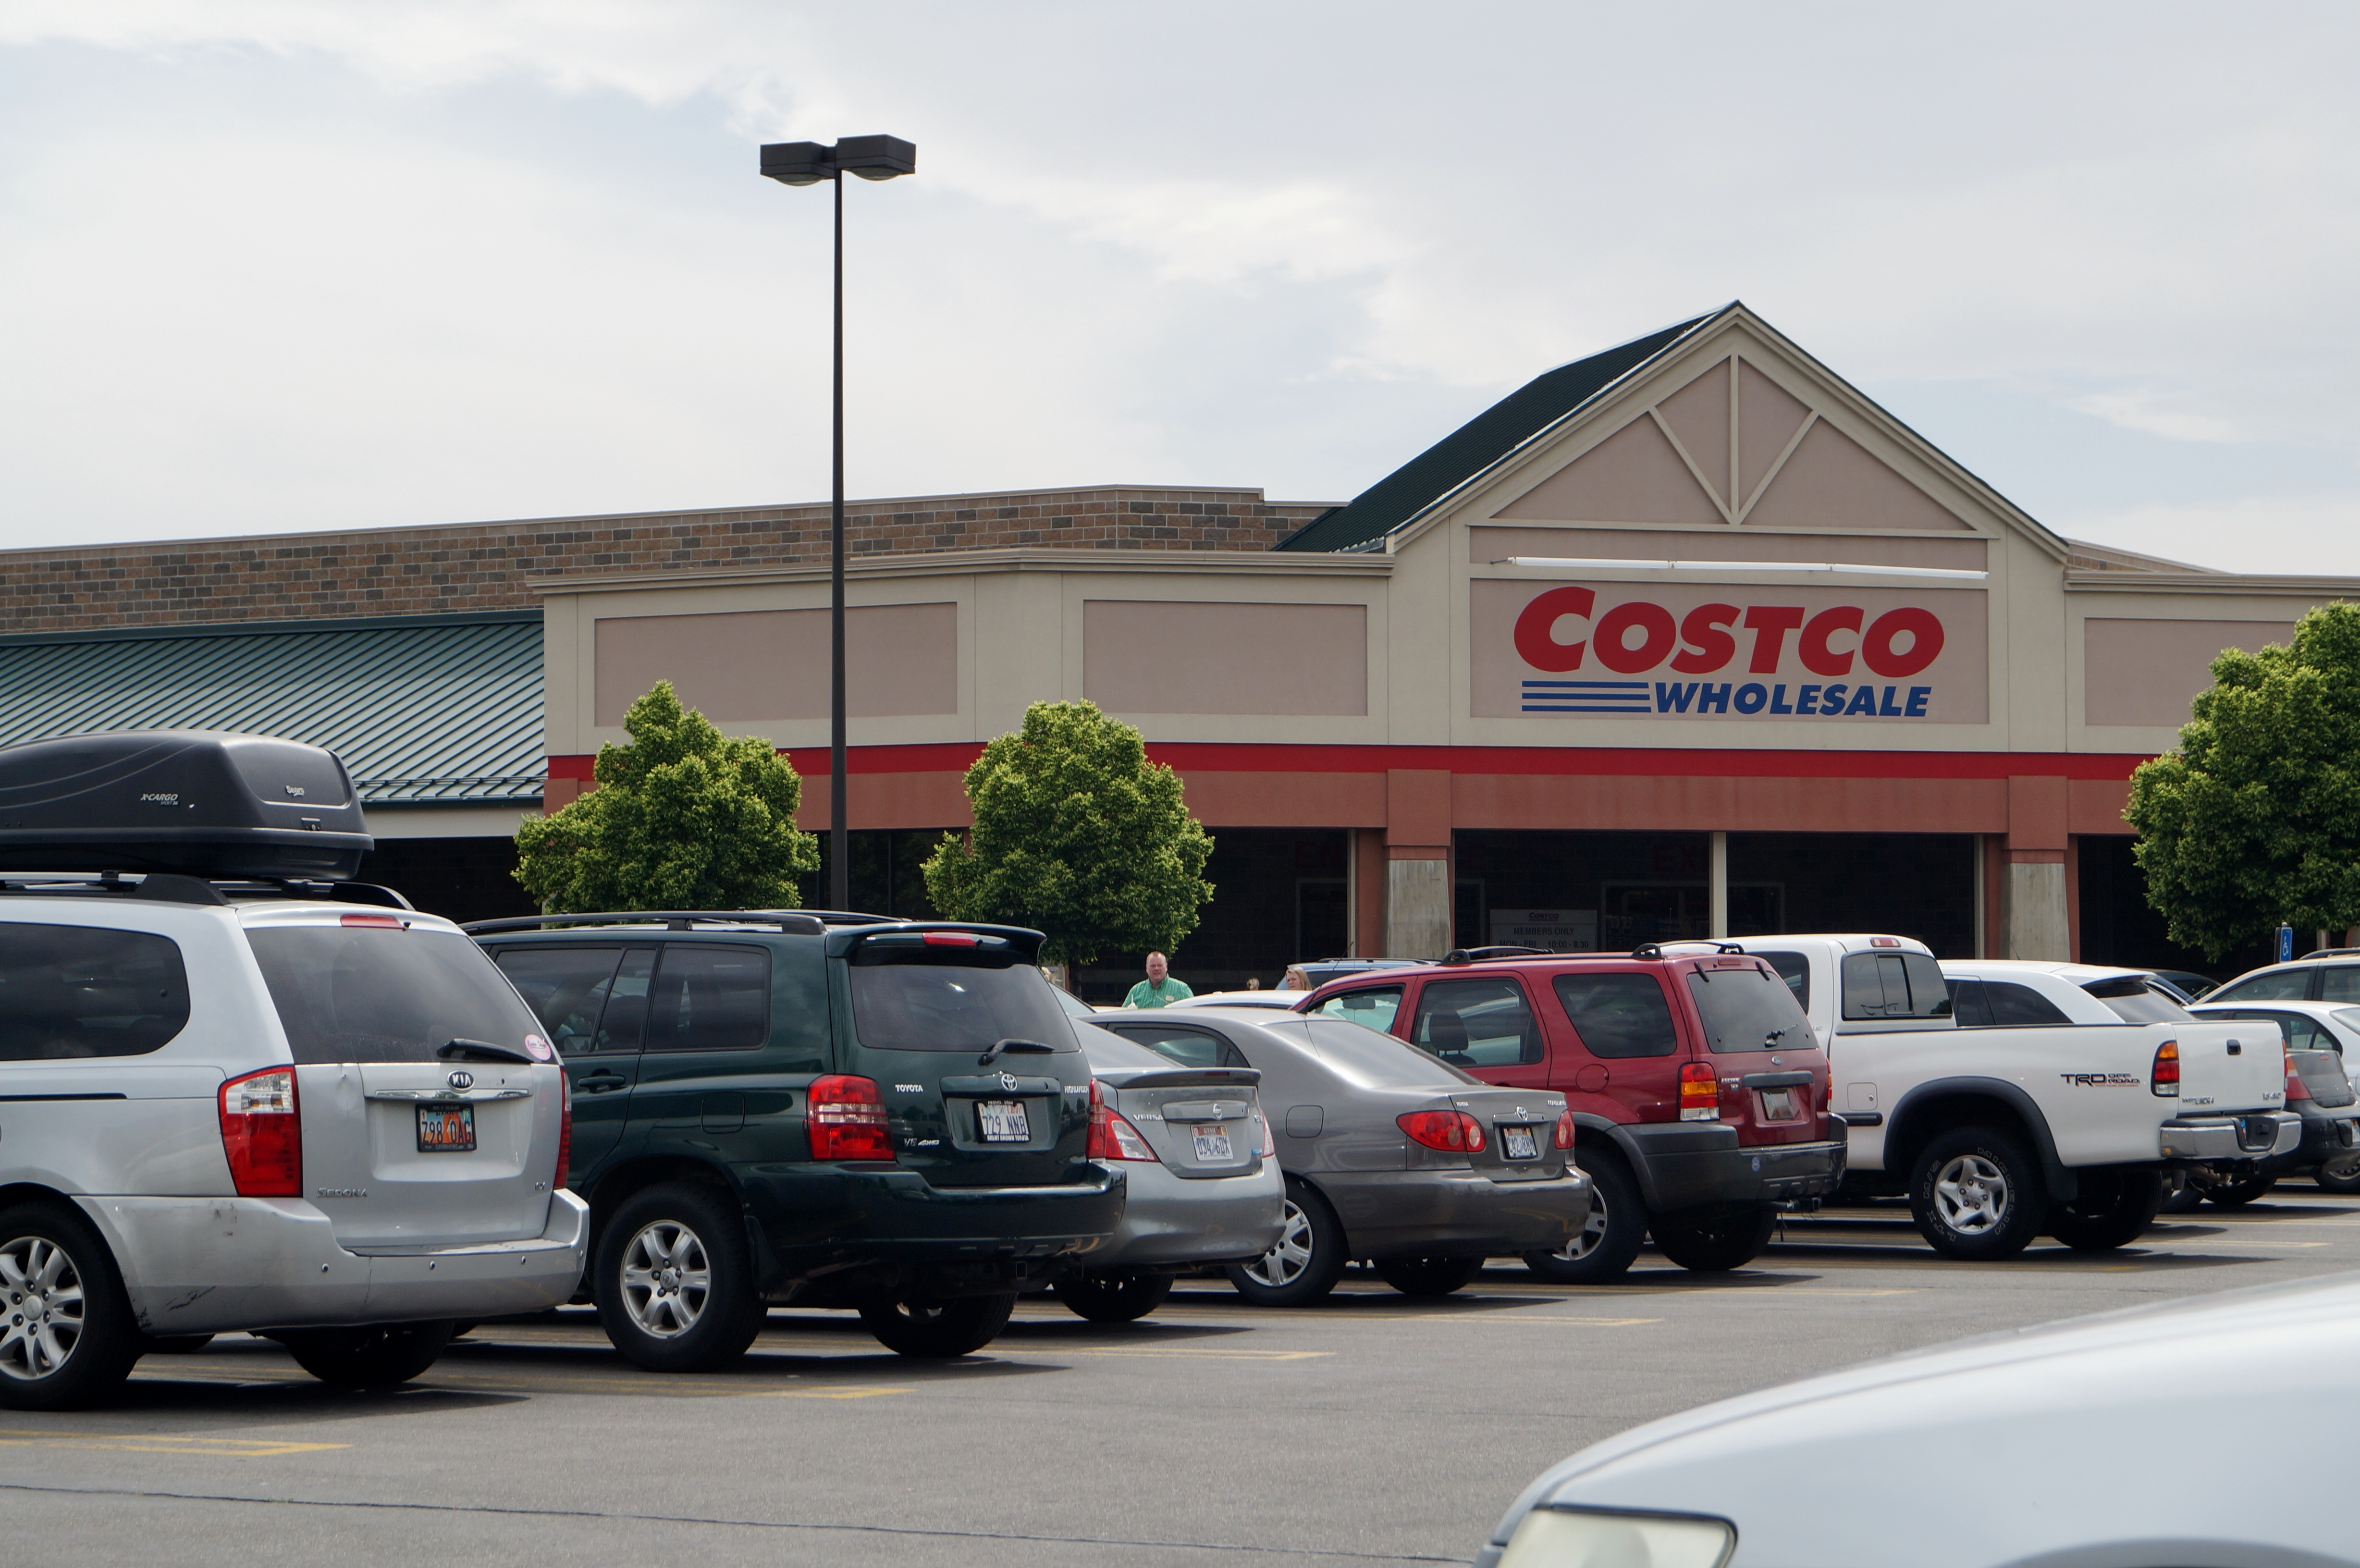 evaluating the cost of buying items in bulk the daily universe costco whole in orem 462 areas of operation in the u s and puerto rico costco provides bulk goods for an annual membership fee